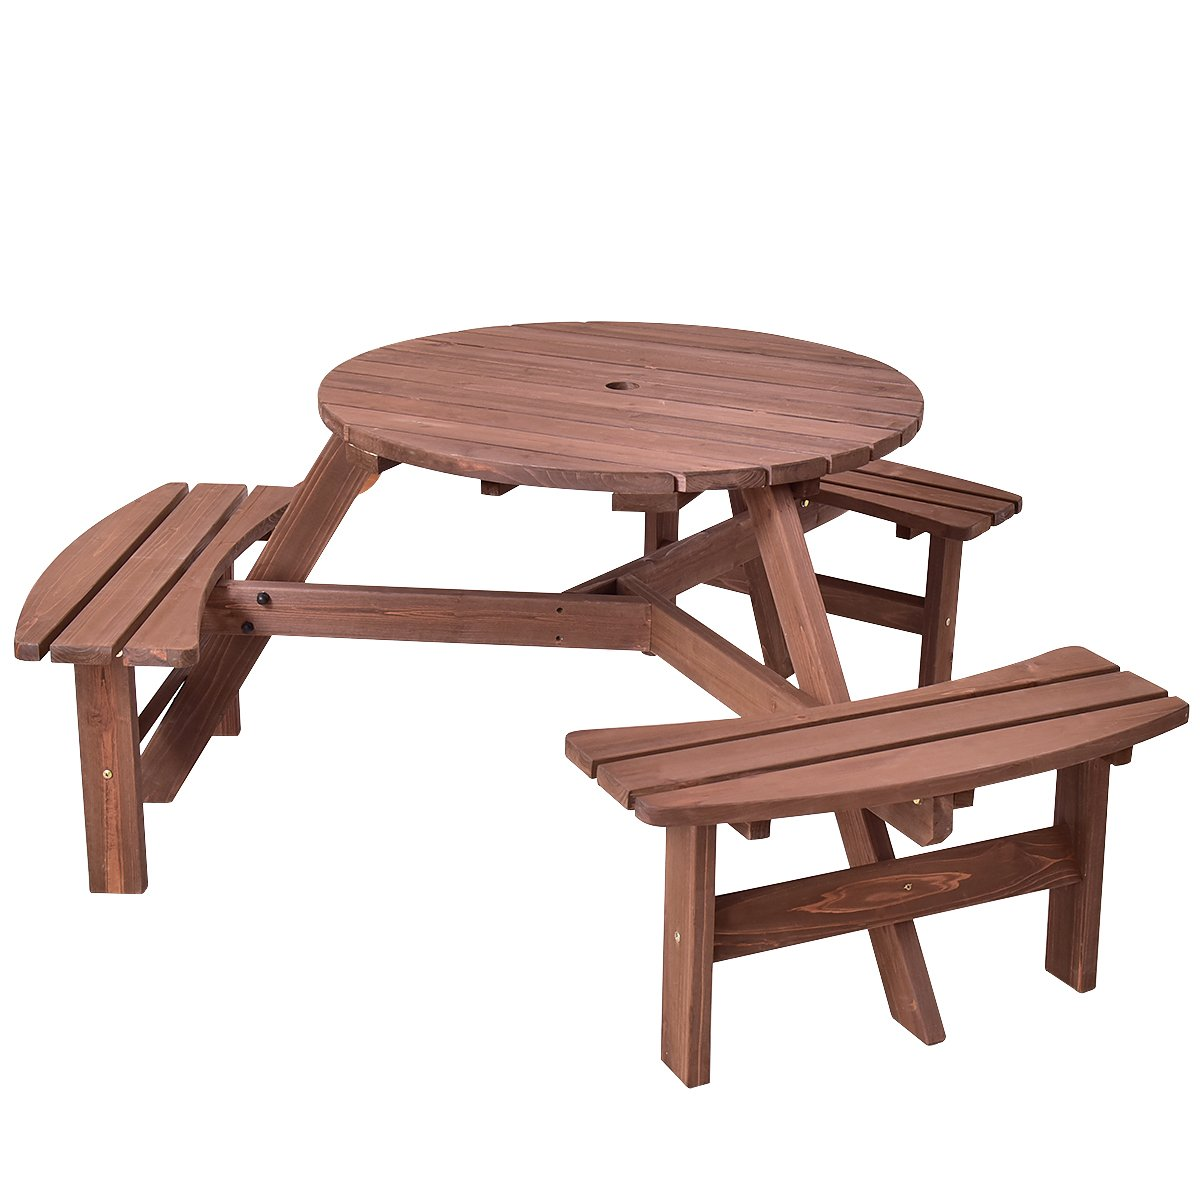 Giantex 6 Person Round Picnic Table Set Outdoor Pub Dining